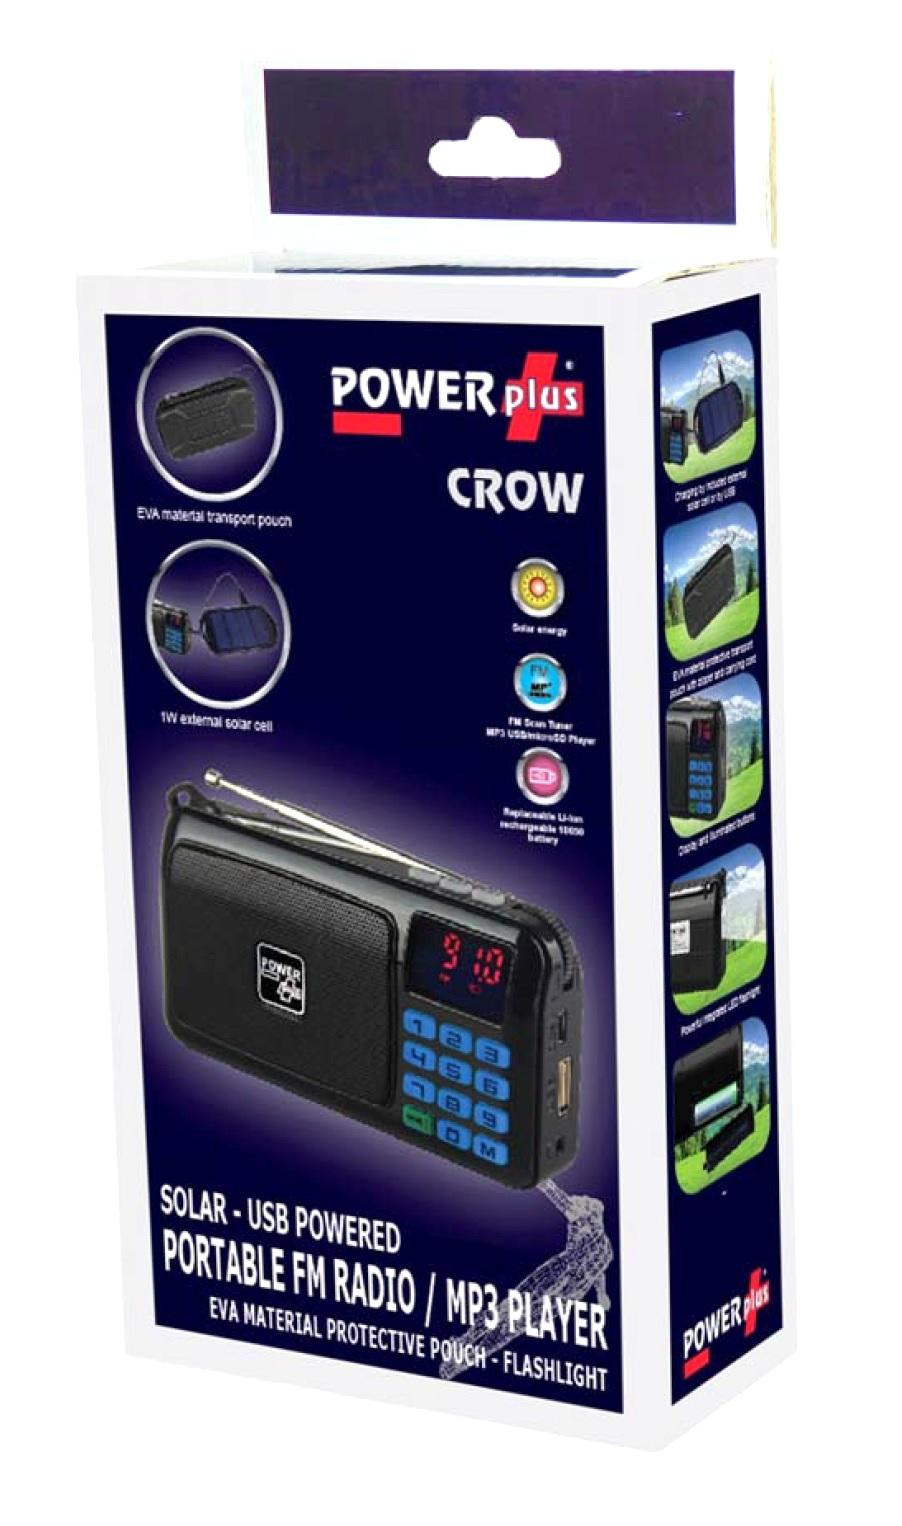 POWERplus Crow Solar - USB Powered FM Radio